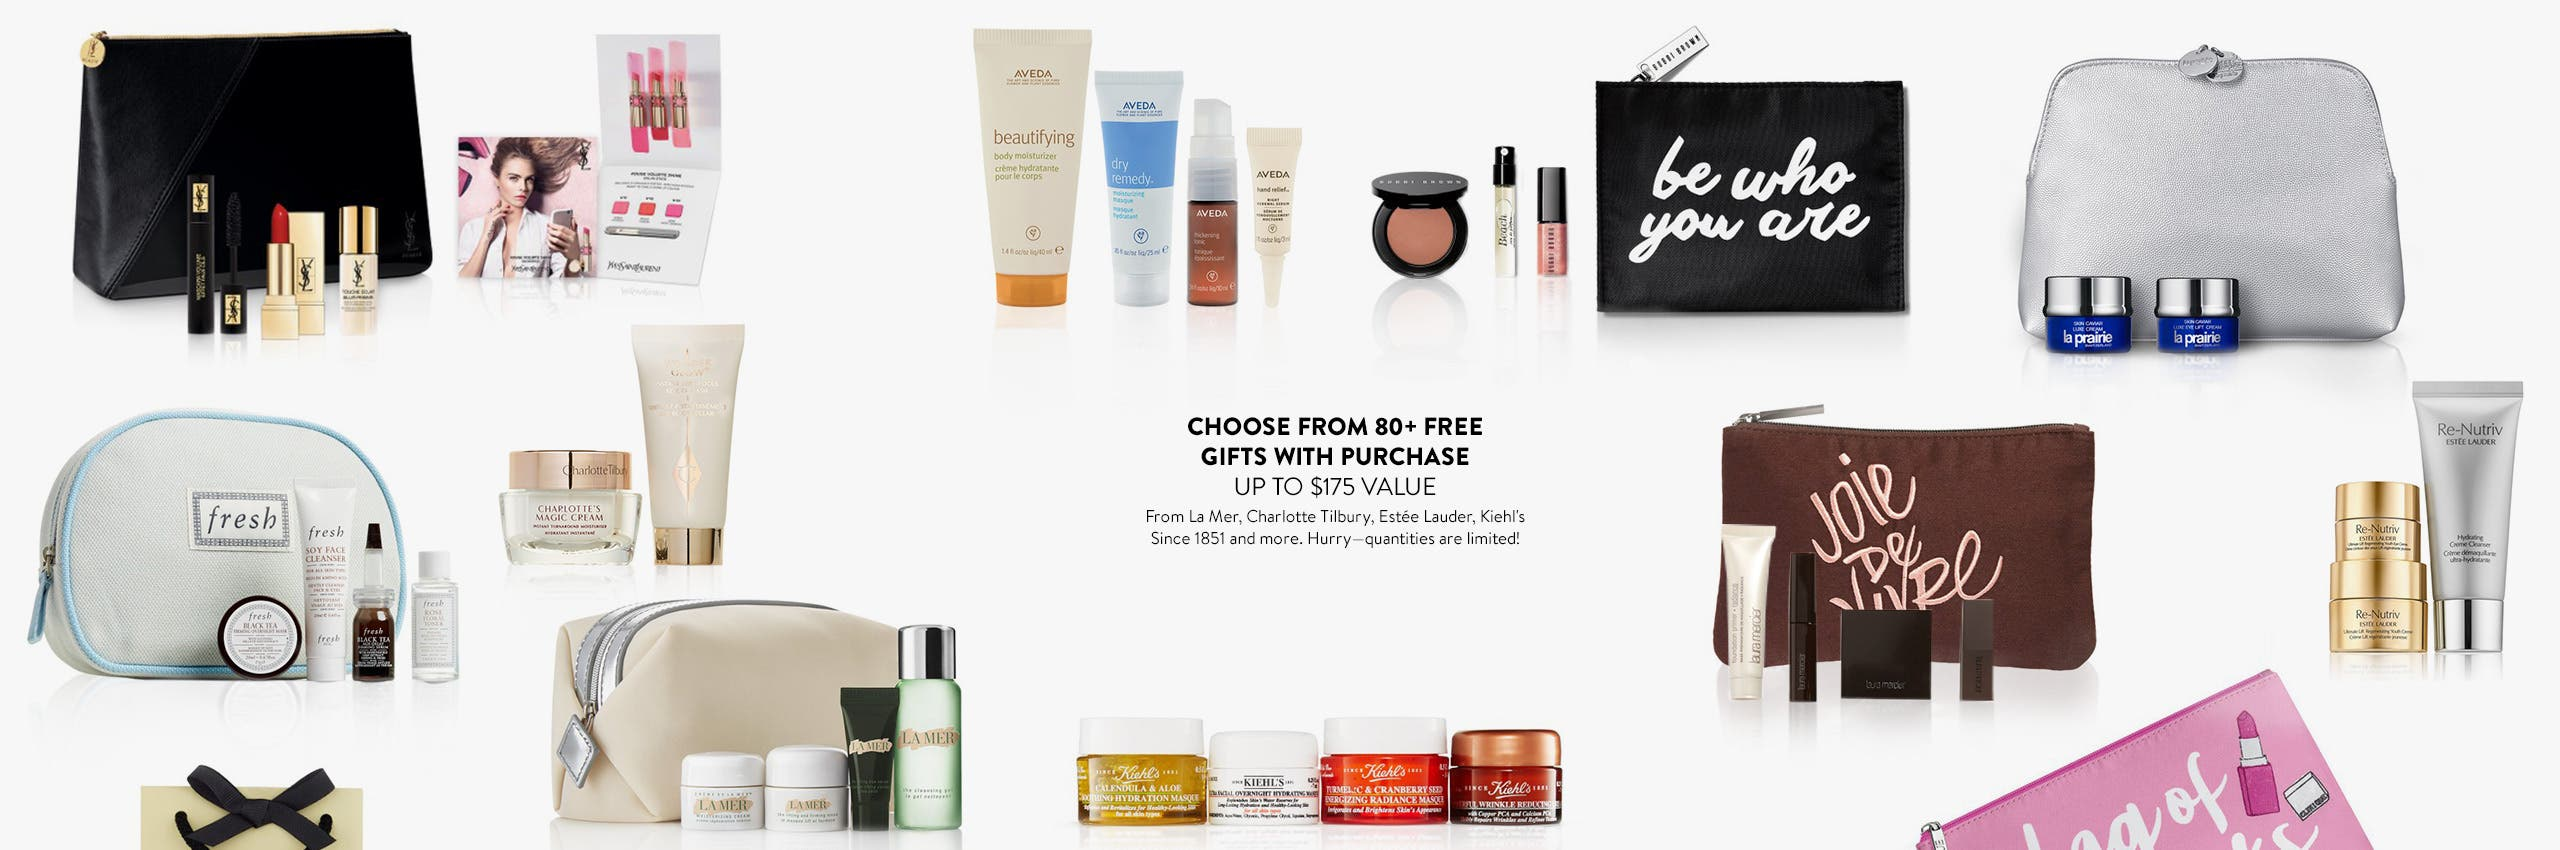 Choose from 80-plus beauty and fragrance gifts with purchase. Up to $175 value.